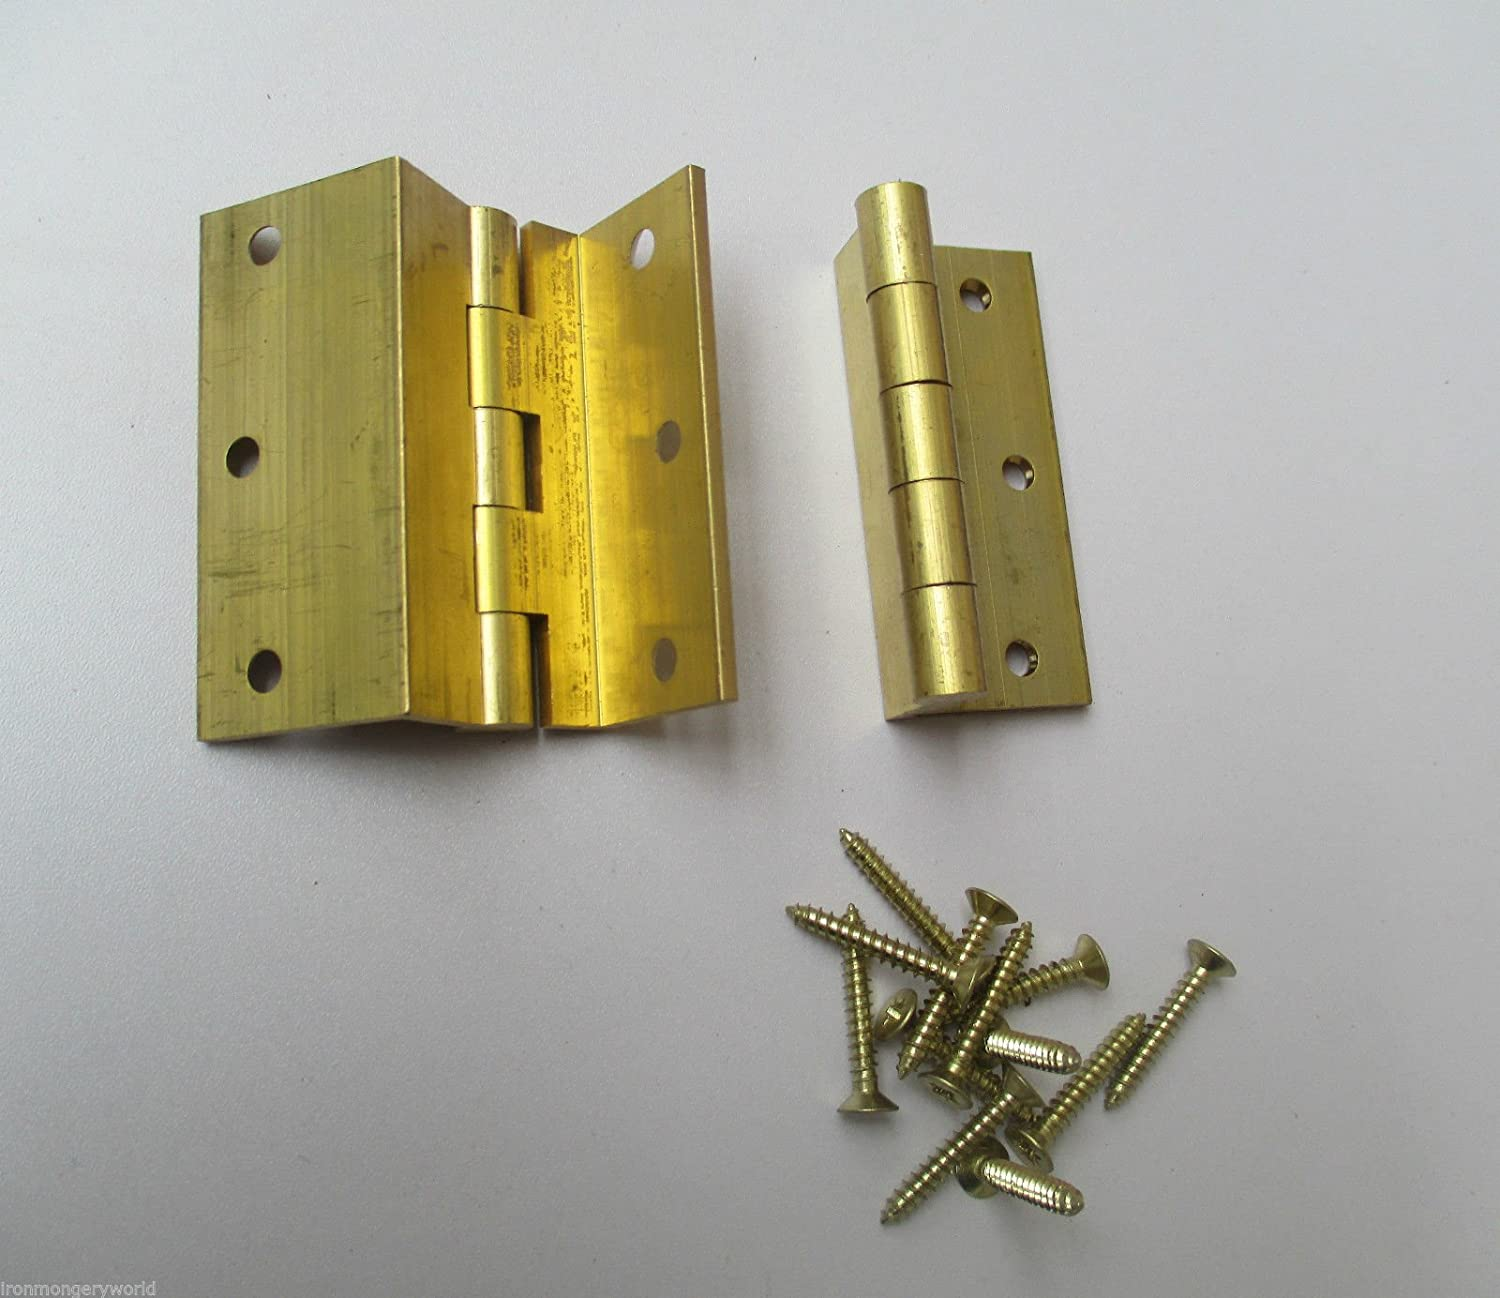 IRONMONGERY WORLD ® 2 X SOLID BRASS - storm proof top hung window hinge cranked casement window door IRONMONGERY WORLD ®